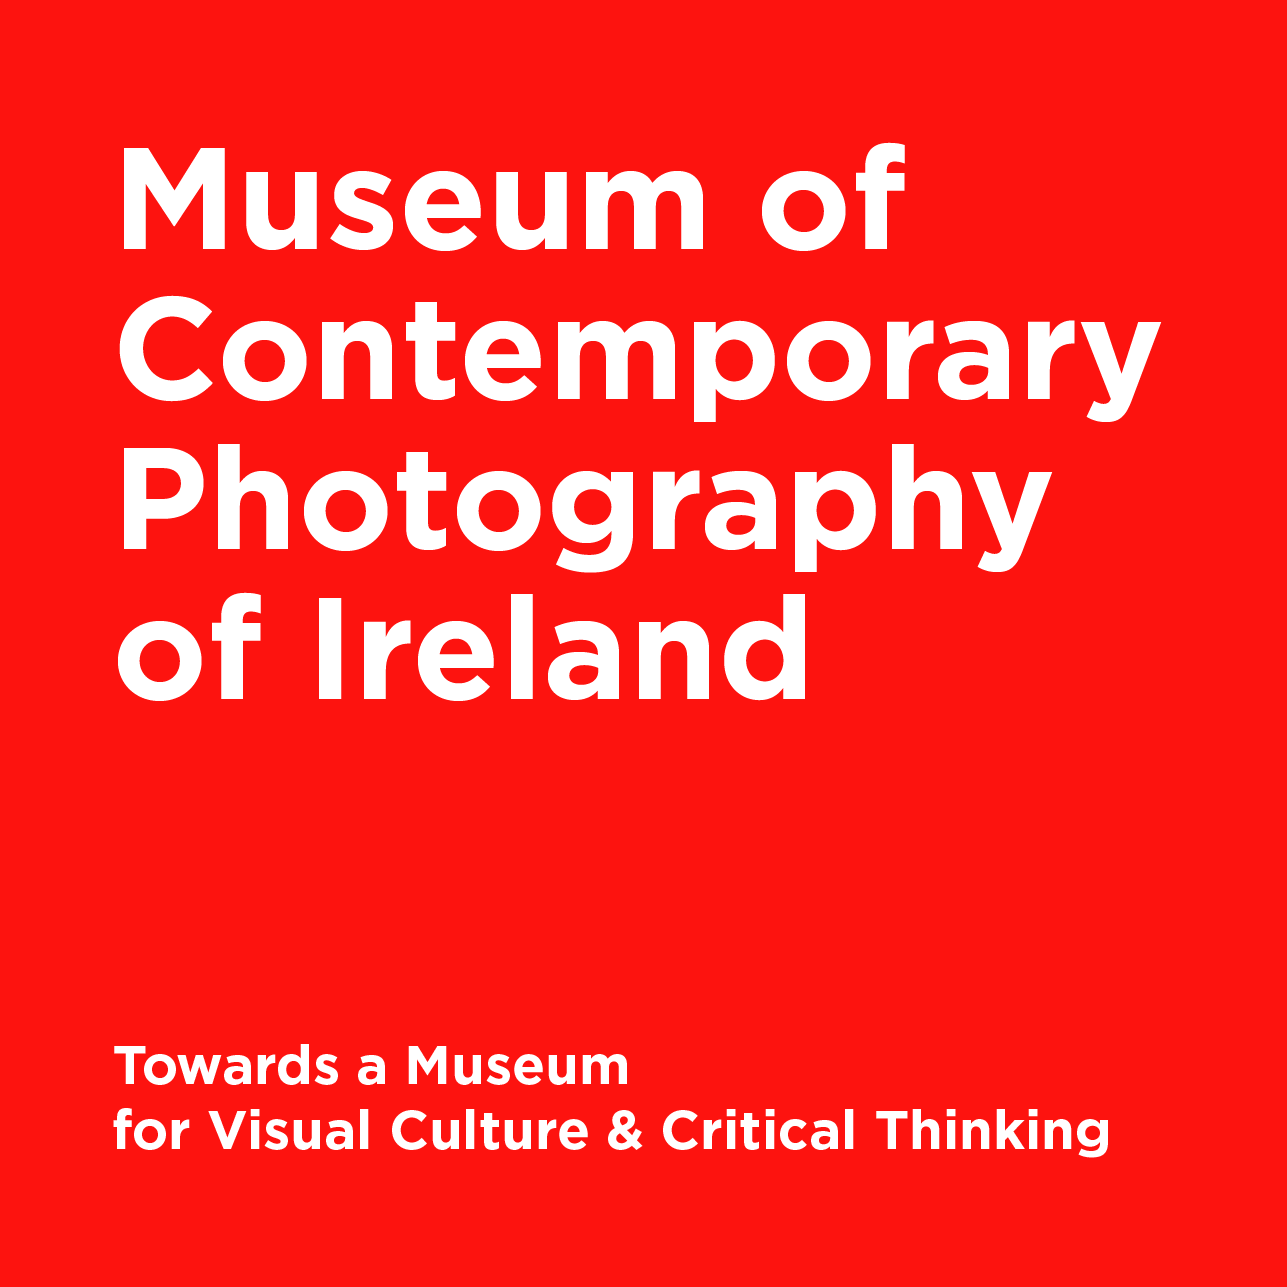 The Museum of Contemporary Photography of Ireland